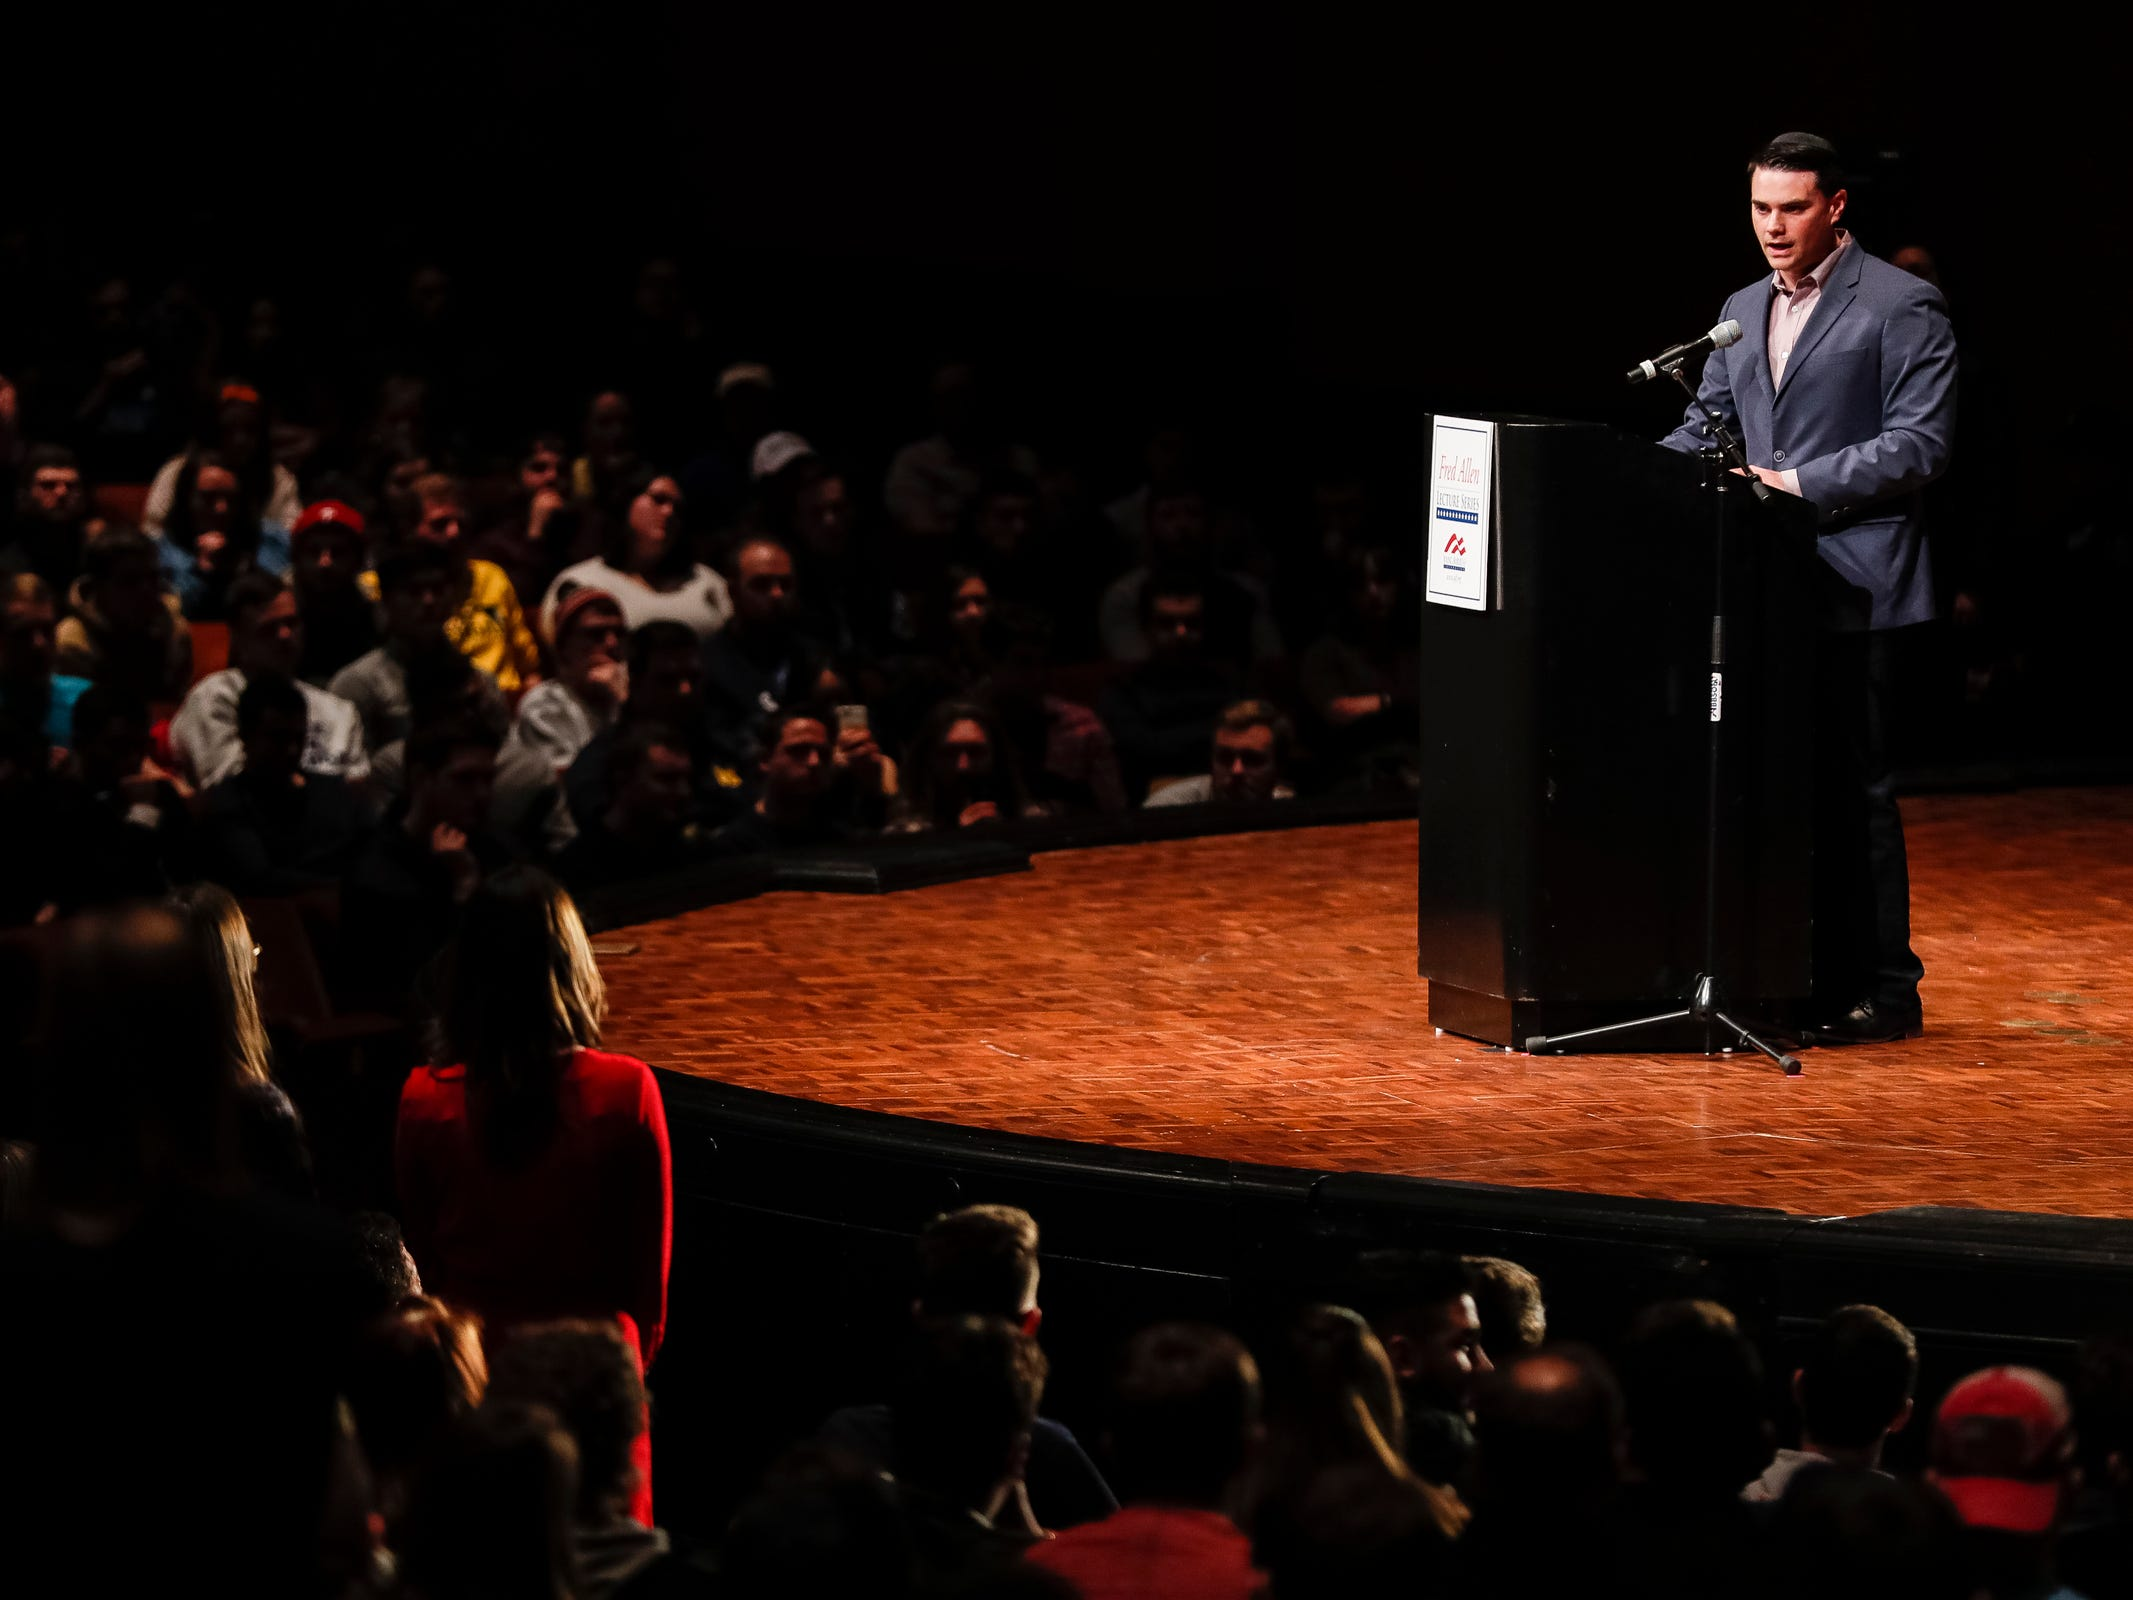 Ben Shapiro answers a student's question at the Rackham Auditorium on U-M central campus in Ann Arbor, Tuesday, March 12. , Tuesday, March 12, 2019.